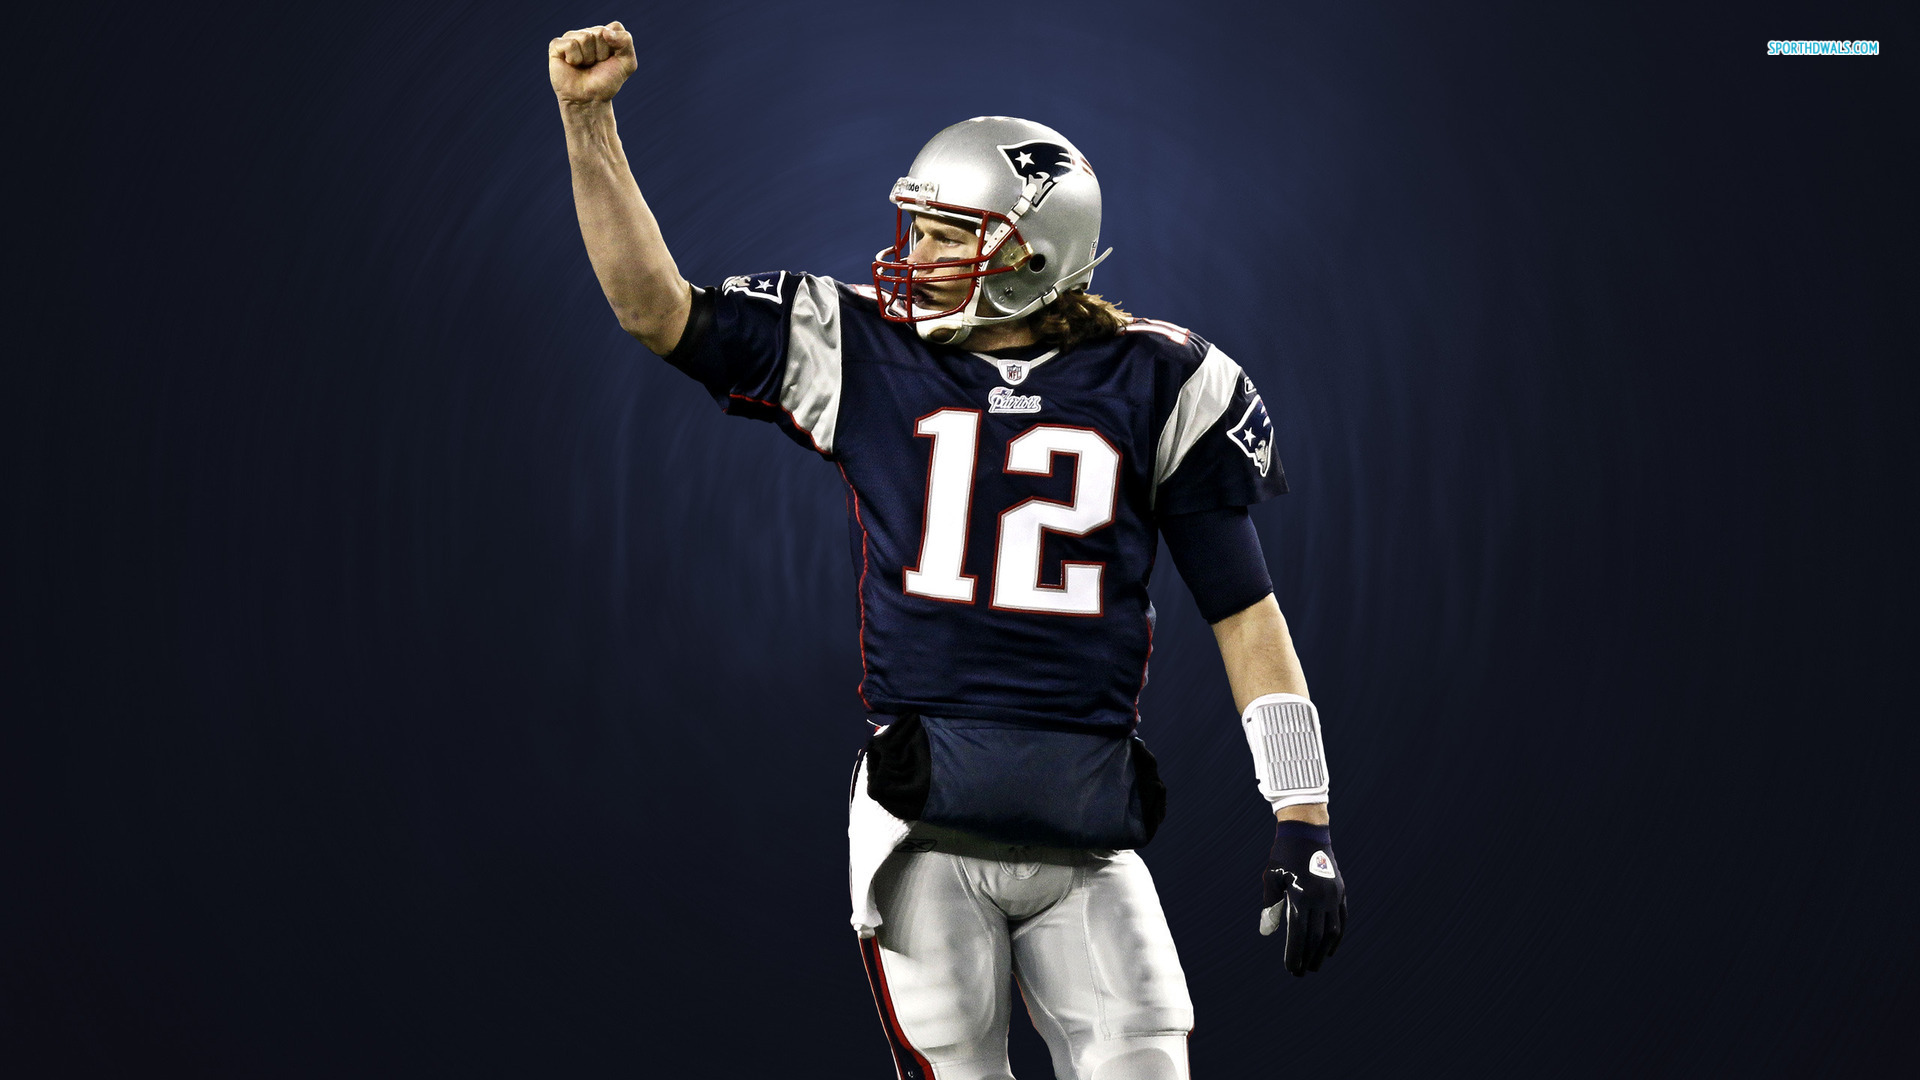 Tom Brady wallpaper 1920x1080